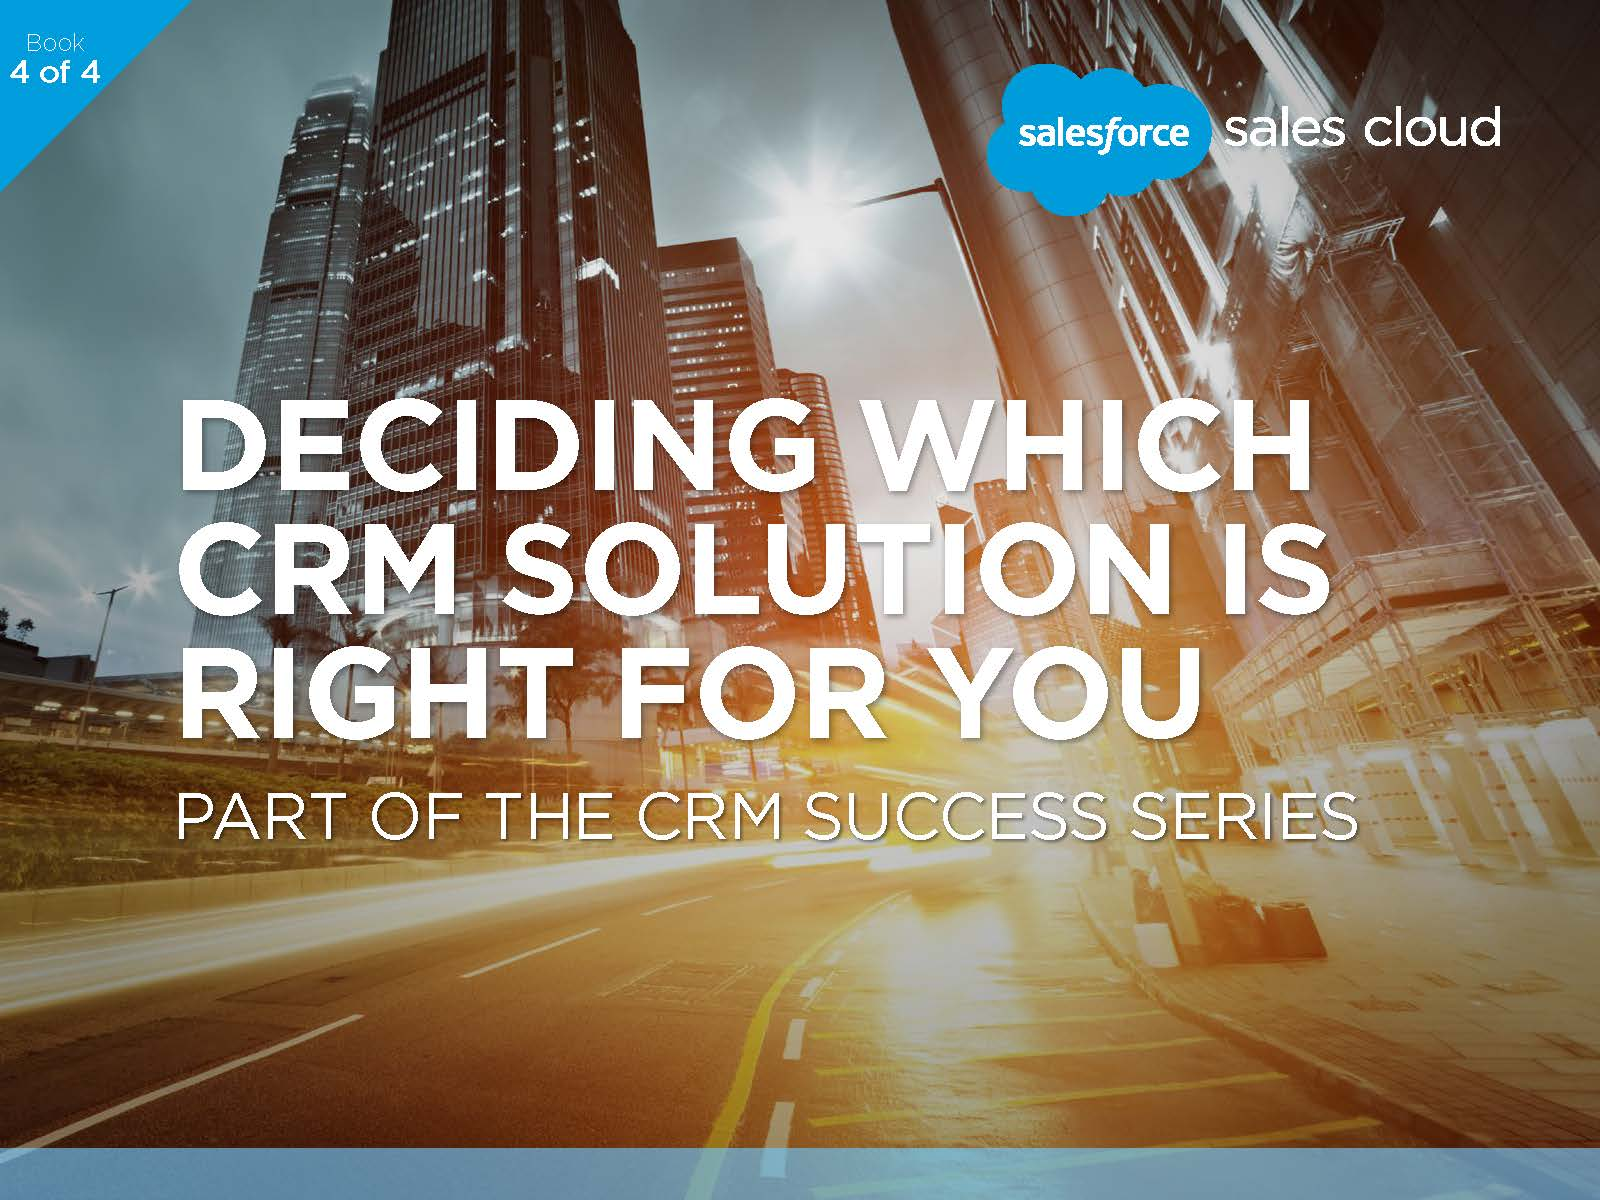 SFDC_what_solution